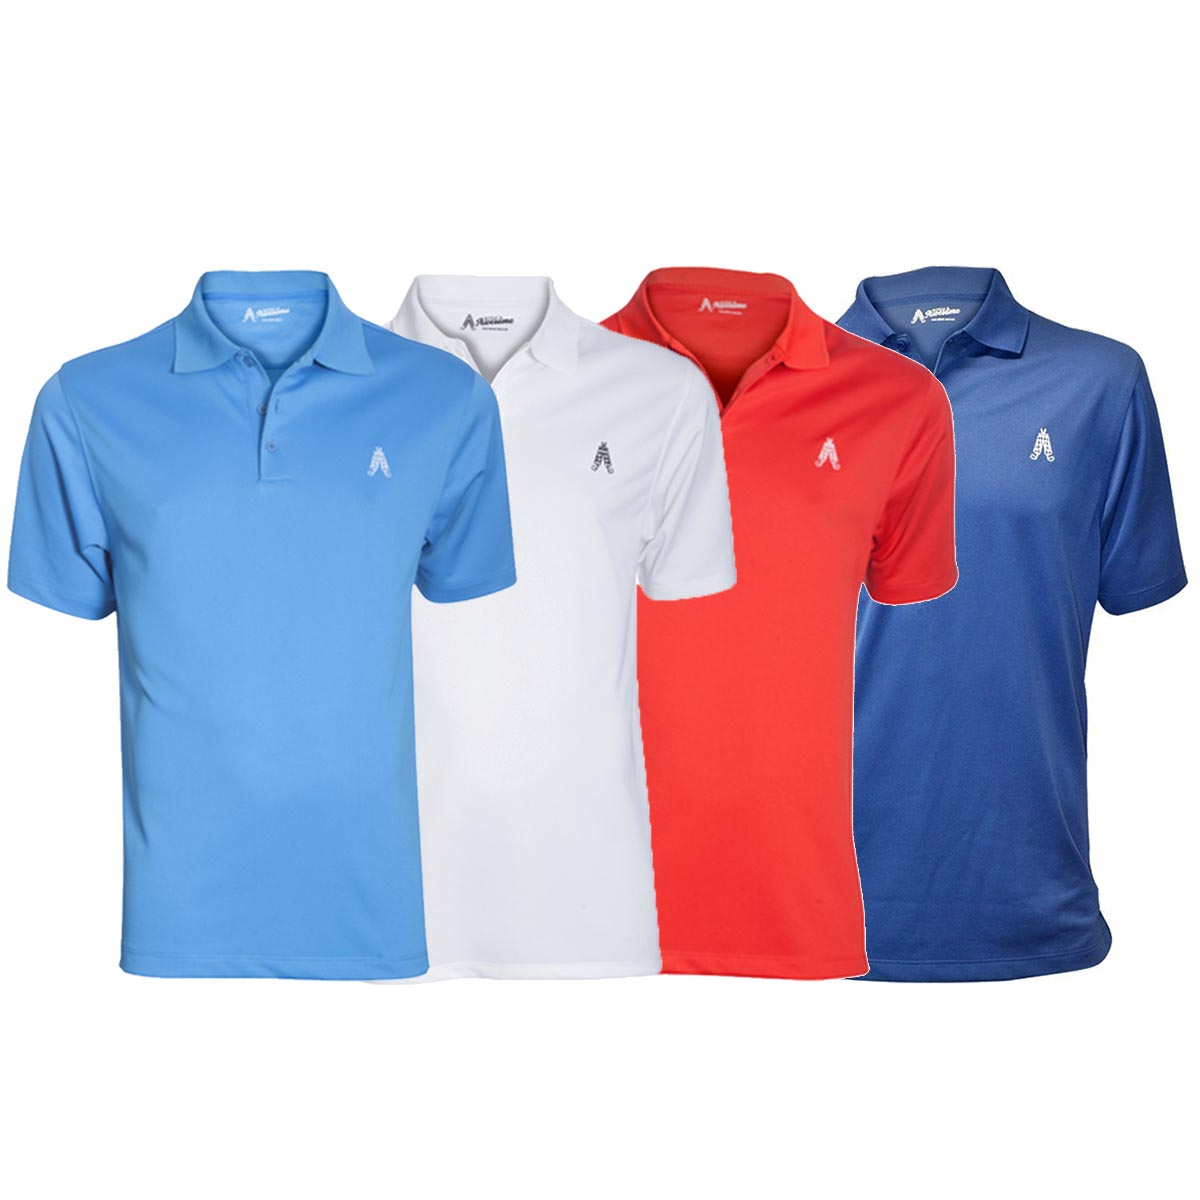 Details about SALE Cheap Mens Golf Shirt by Royal and Awesome 4 Colors S - XXL Golf Polos Top